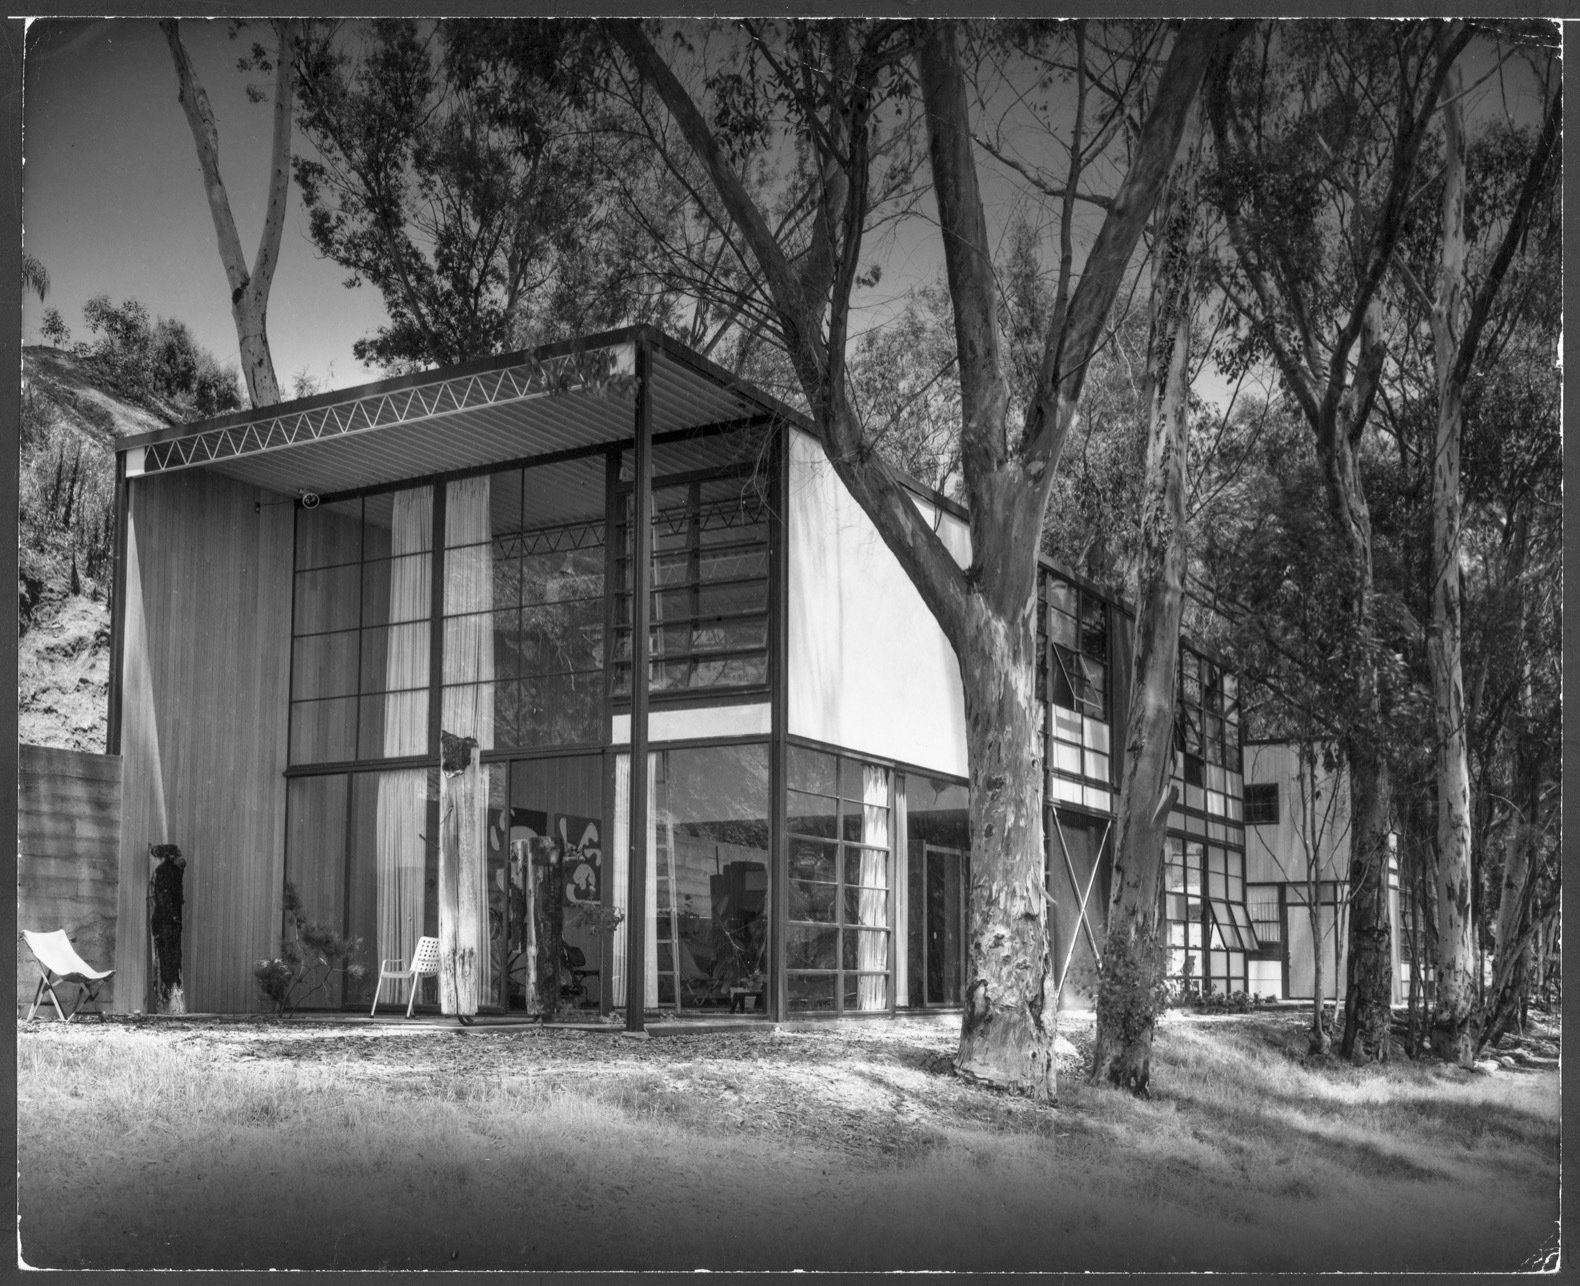 Getty Unveils New Plan to Conserve the Iconic Eames House